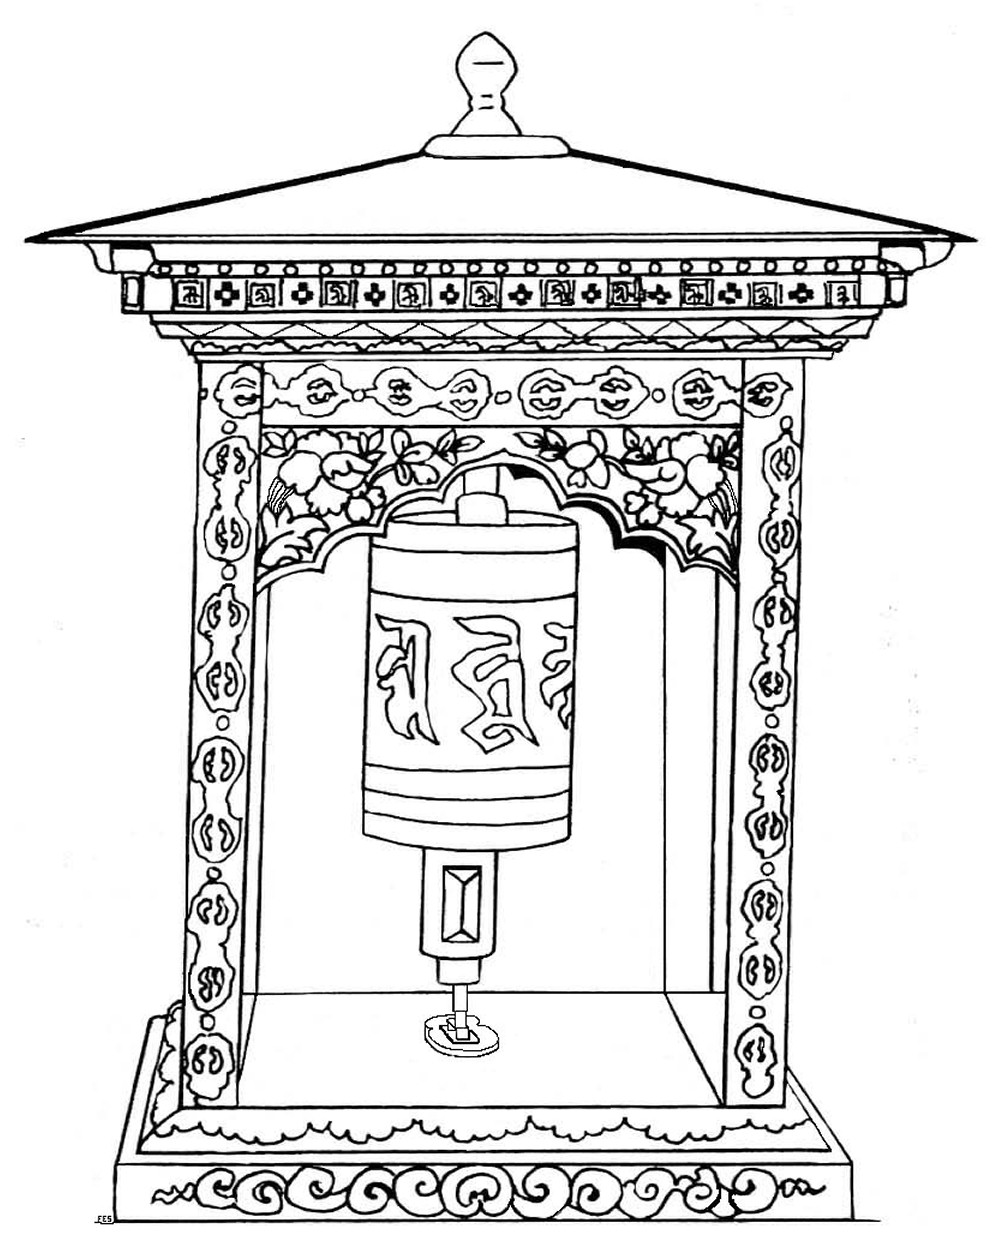 Prayer Wheel Coloring Page